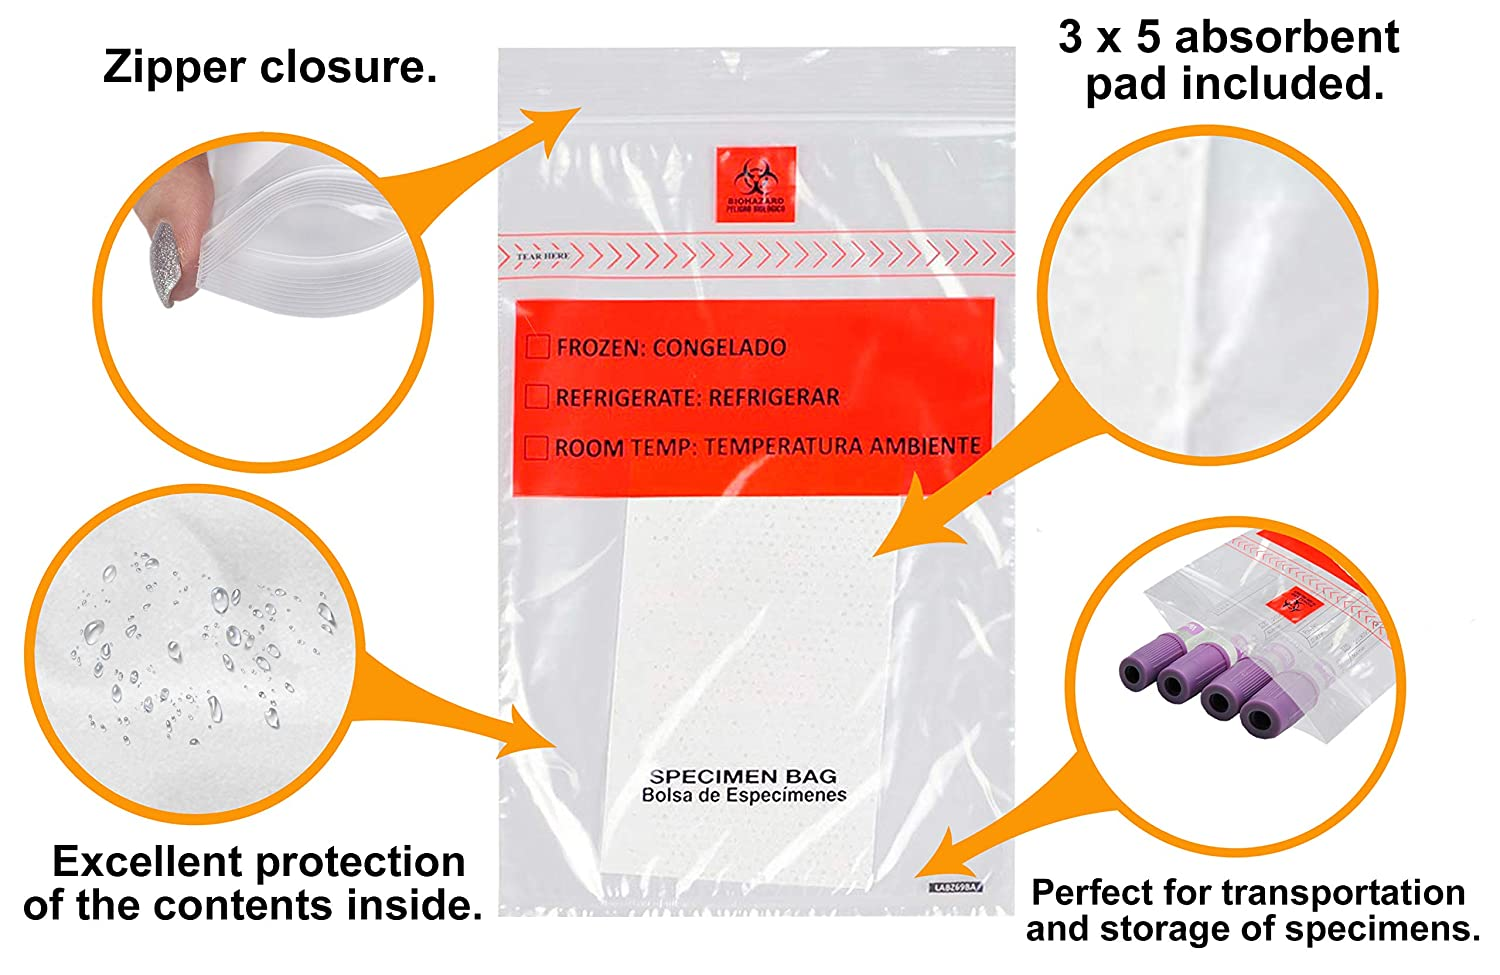 APQ Pack of 100 Specimen Bags 6 x 9 Absorbent Pad Plastic Bags 1.75 mil for Healthcare Needs Low Density polyethylene Printed Bags 6x9 Removable Biohazard Symbol. Great for clinics and Hospitals